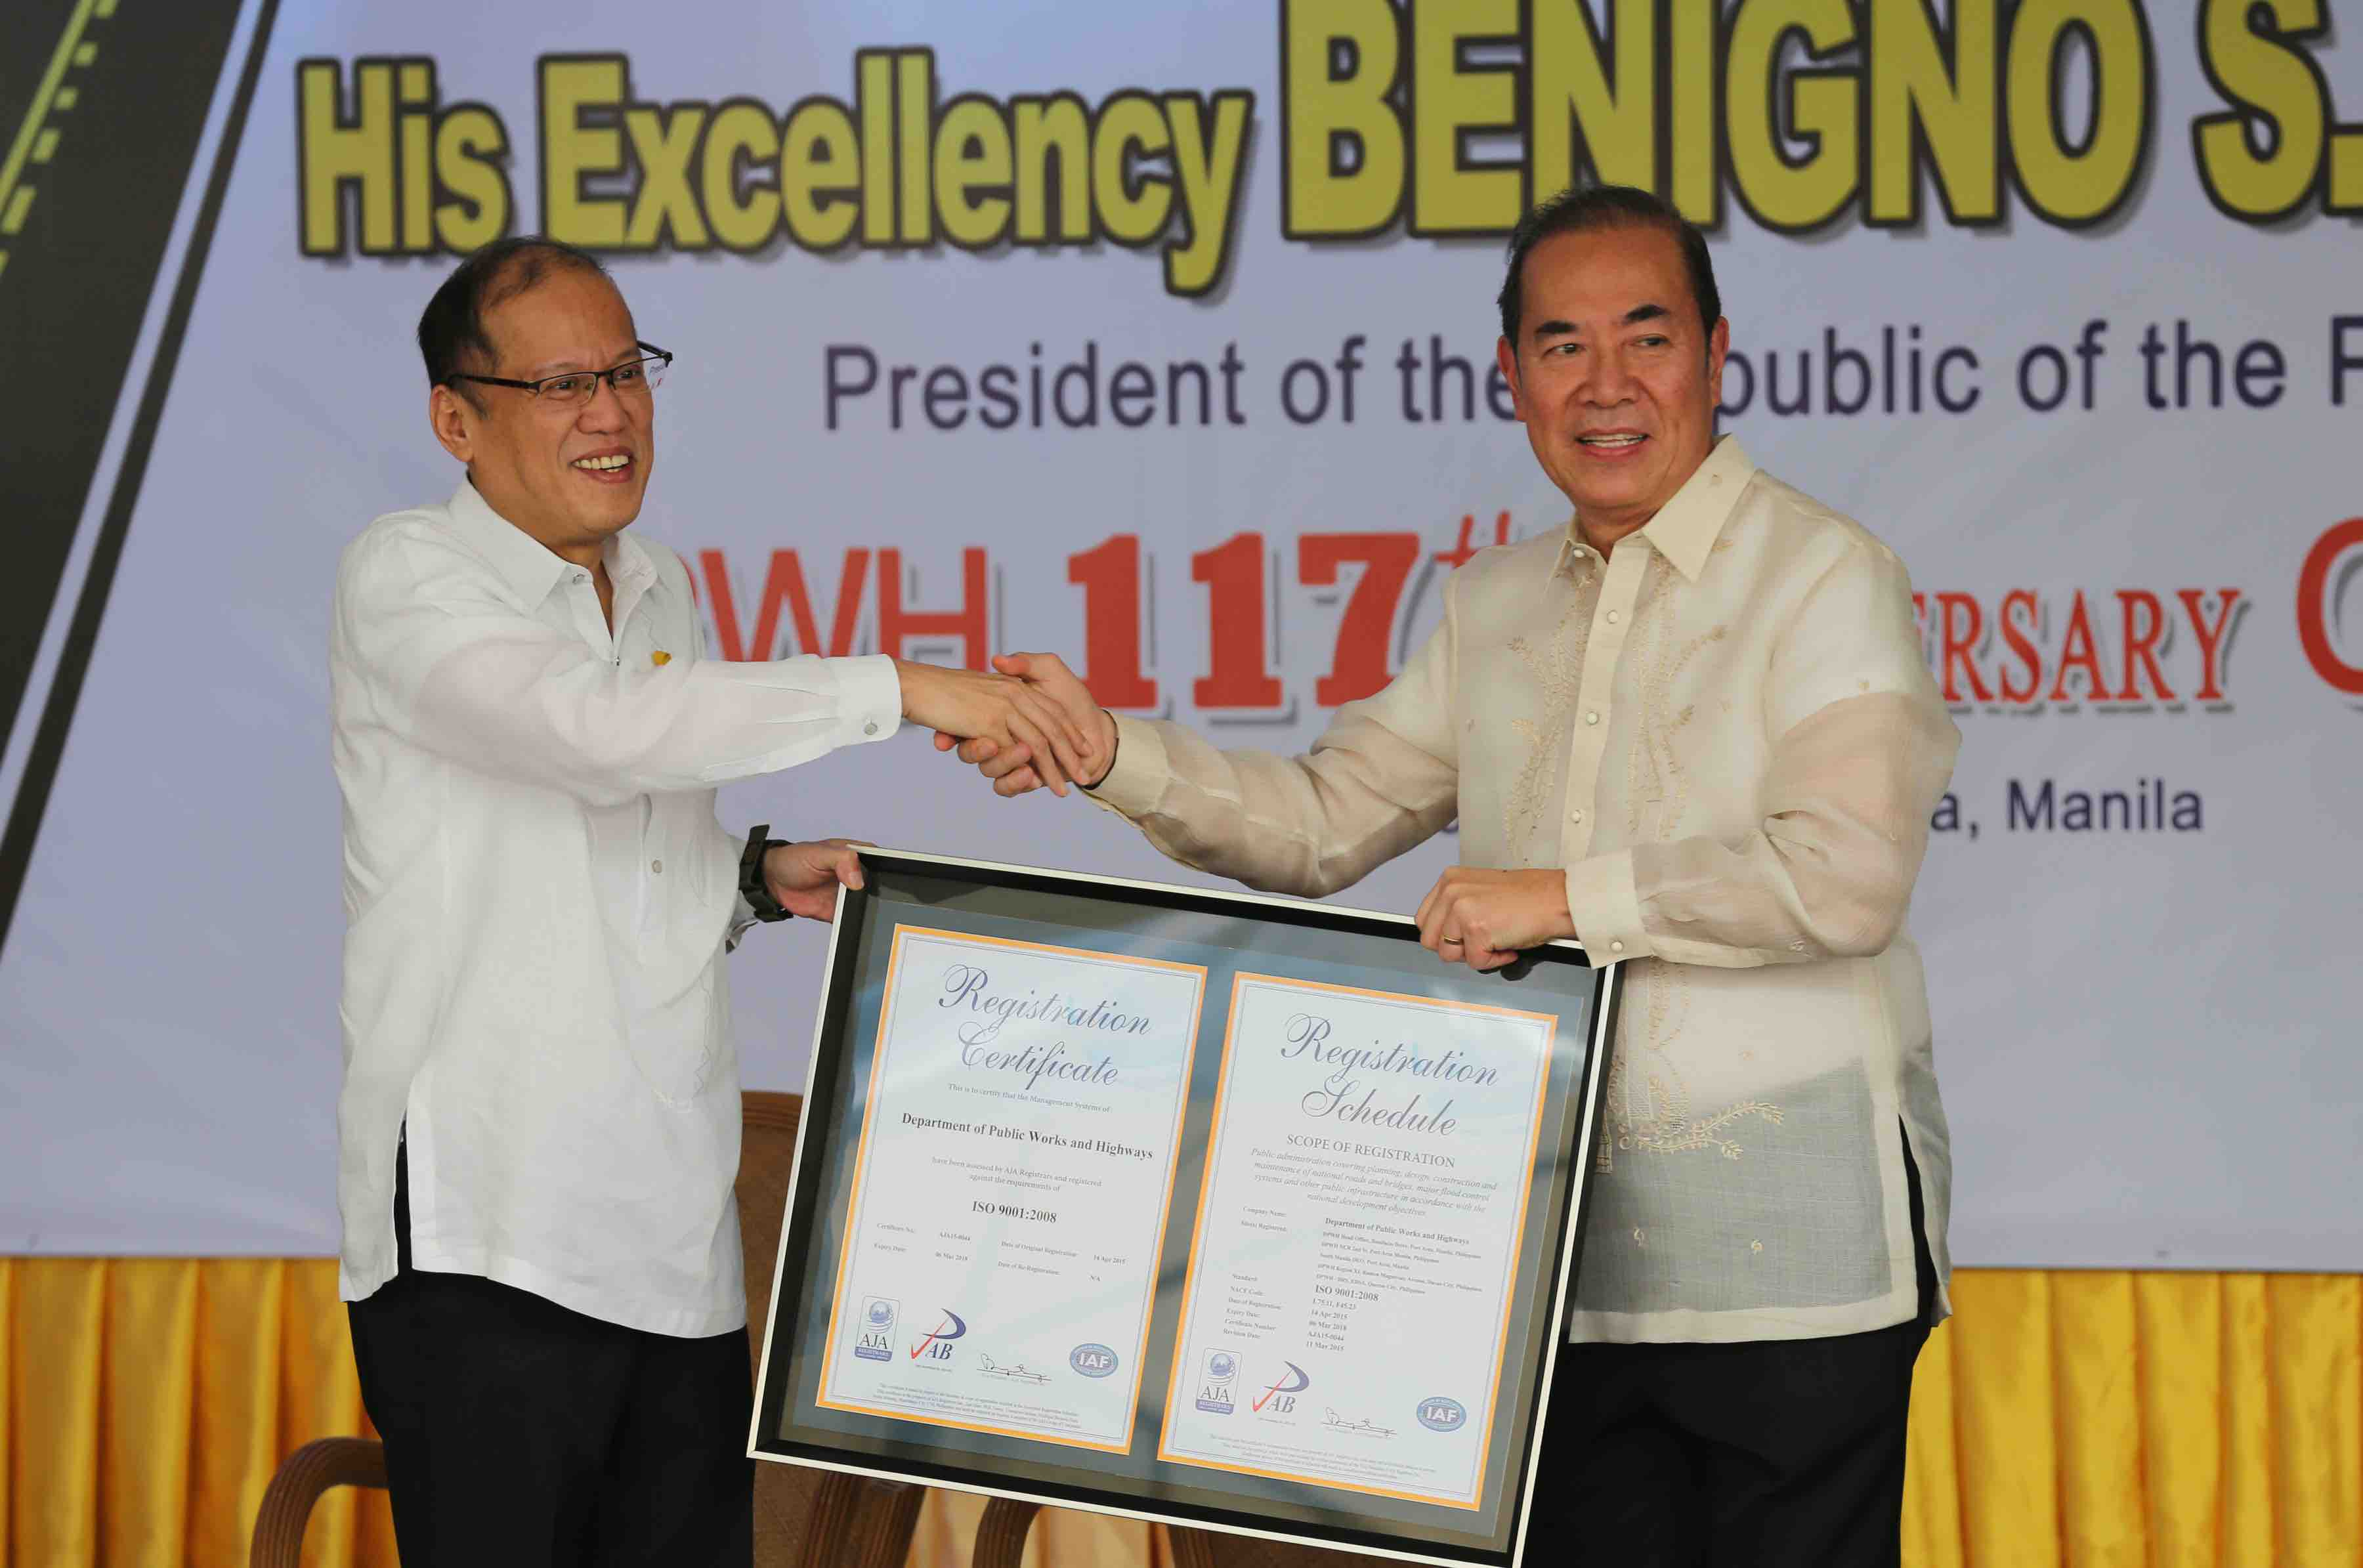 President Benigno S. Aquino III receives a copy of a framed ISO 9001:2008 Registration Certificate of DPWHu2019s Quality Management System (QMS) presented by Public Works and Highways Secretary Rogelio Singson during the 117th anniversary of the Department of Public Works and Highways (DPWH) at the DPWH Quadrangle of the Central Office in Bonifacio Drive Port Area, Manila City on Monday (June 22, 2015). This yearu2019s theme: u201cDPWH: Sa Daang Matuwid, Para Sa Diyos at Bayanu201d. (Photo by Lauro Montellano, Jr. / Malacau00f1ang Photo Bureau)